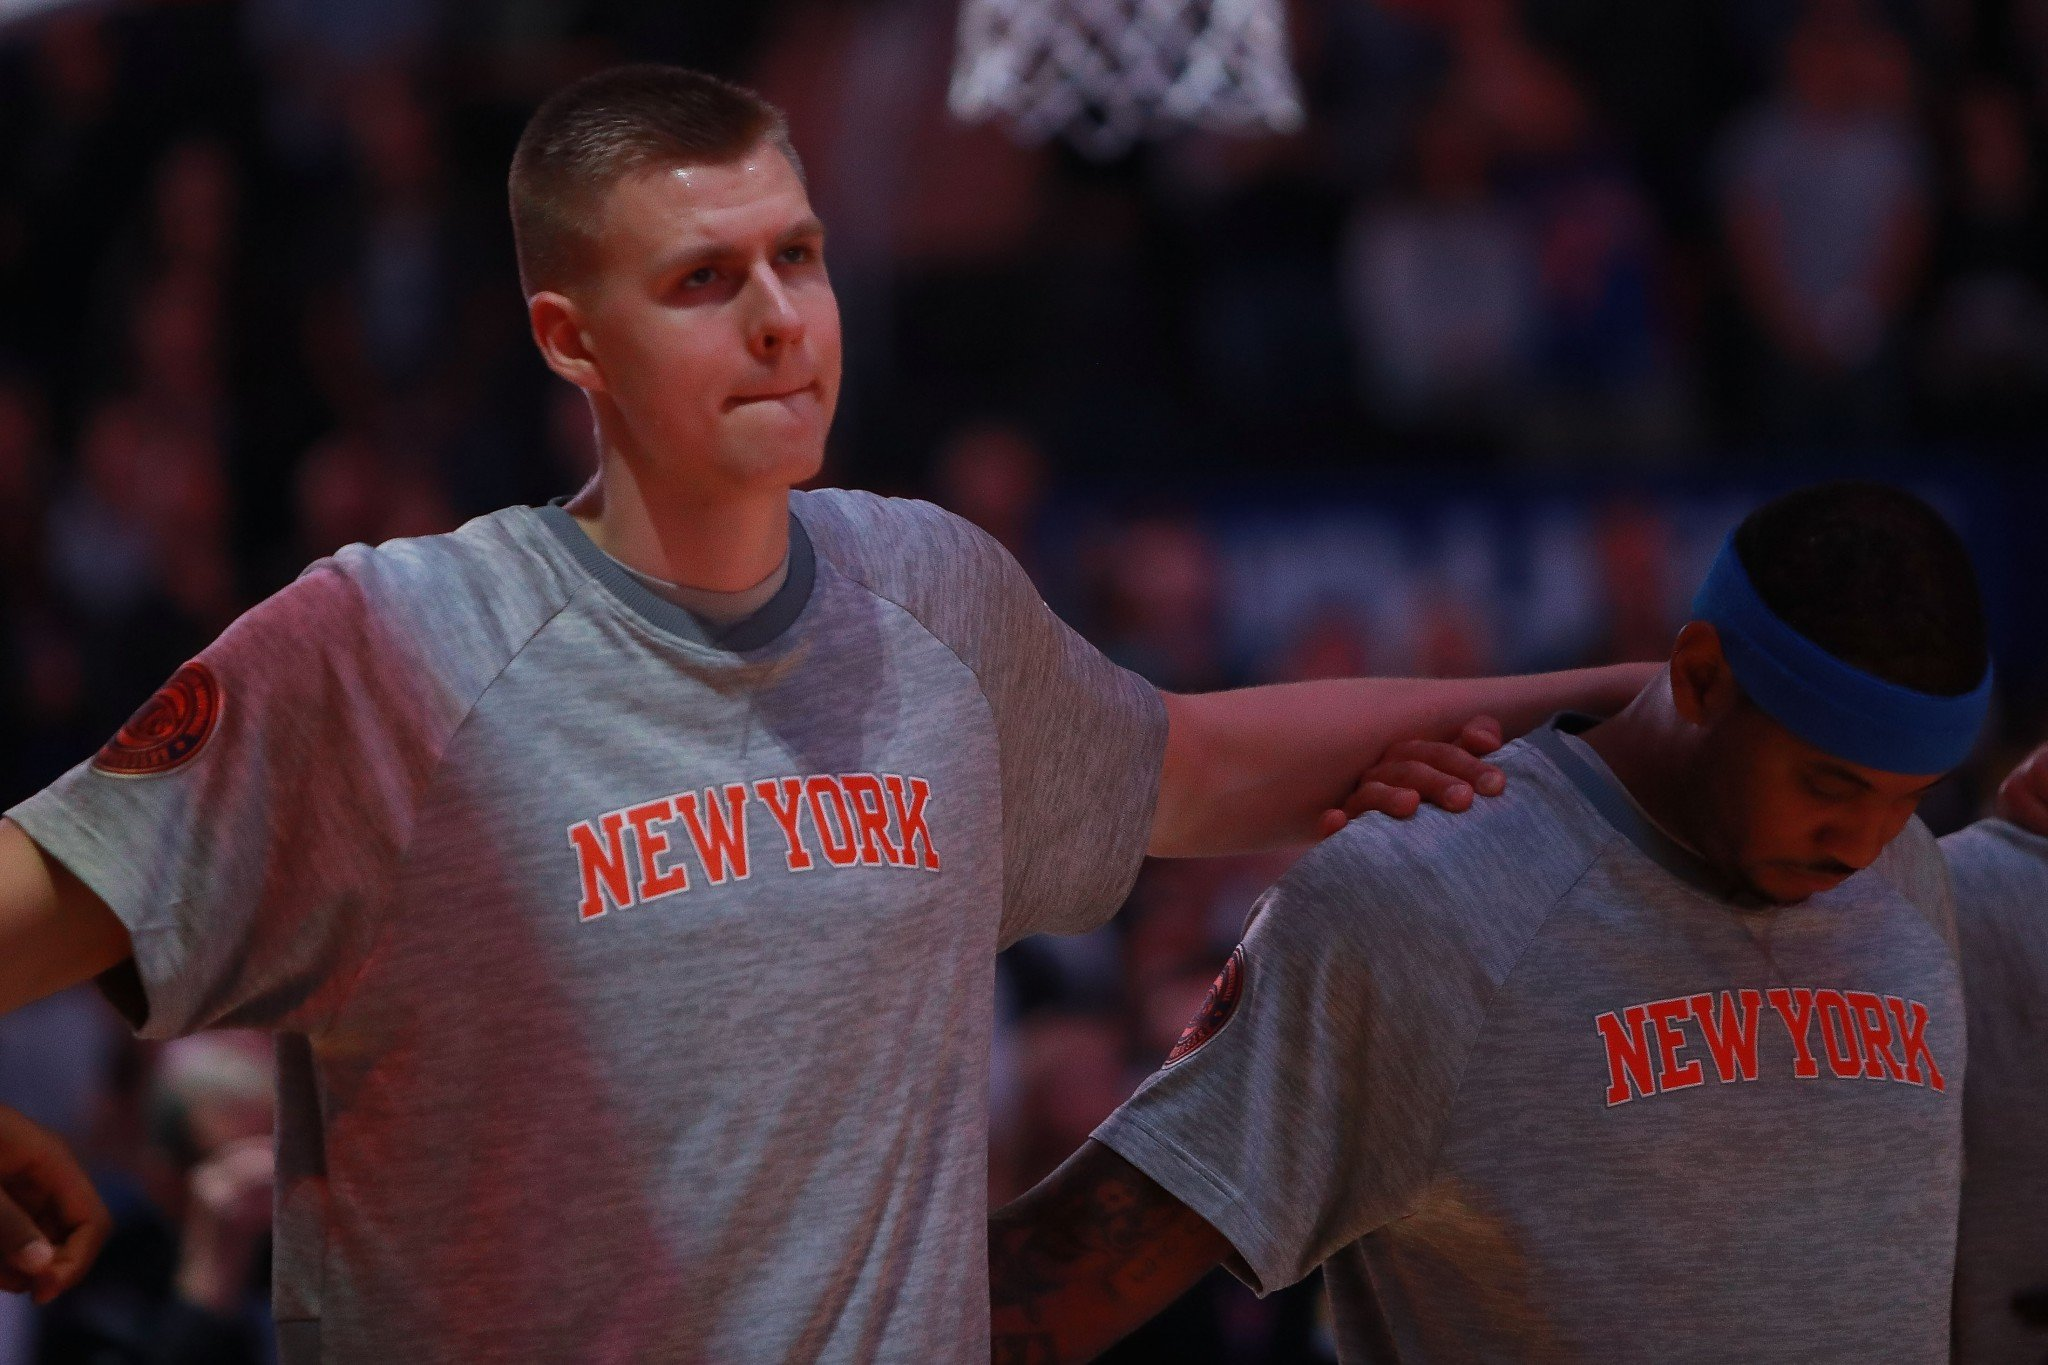 Carmelo Anthony (right) and Kristaps Porzingis of the New York Knicks stand together during the national anthem prior to a Oct. 15, 2016, preseason game. (Getty Images)